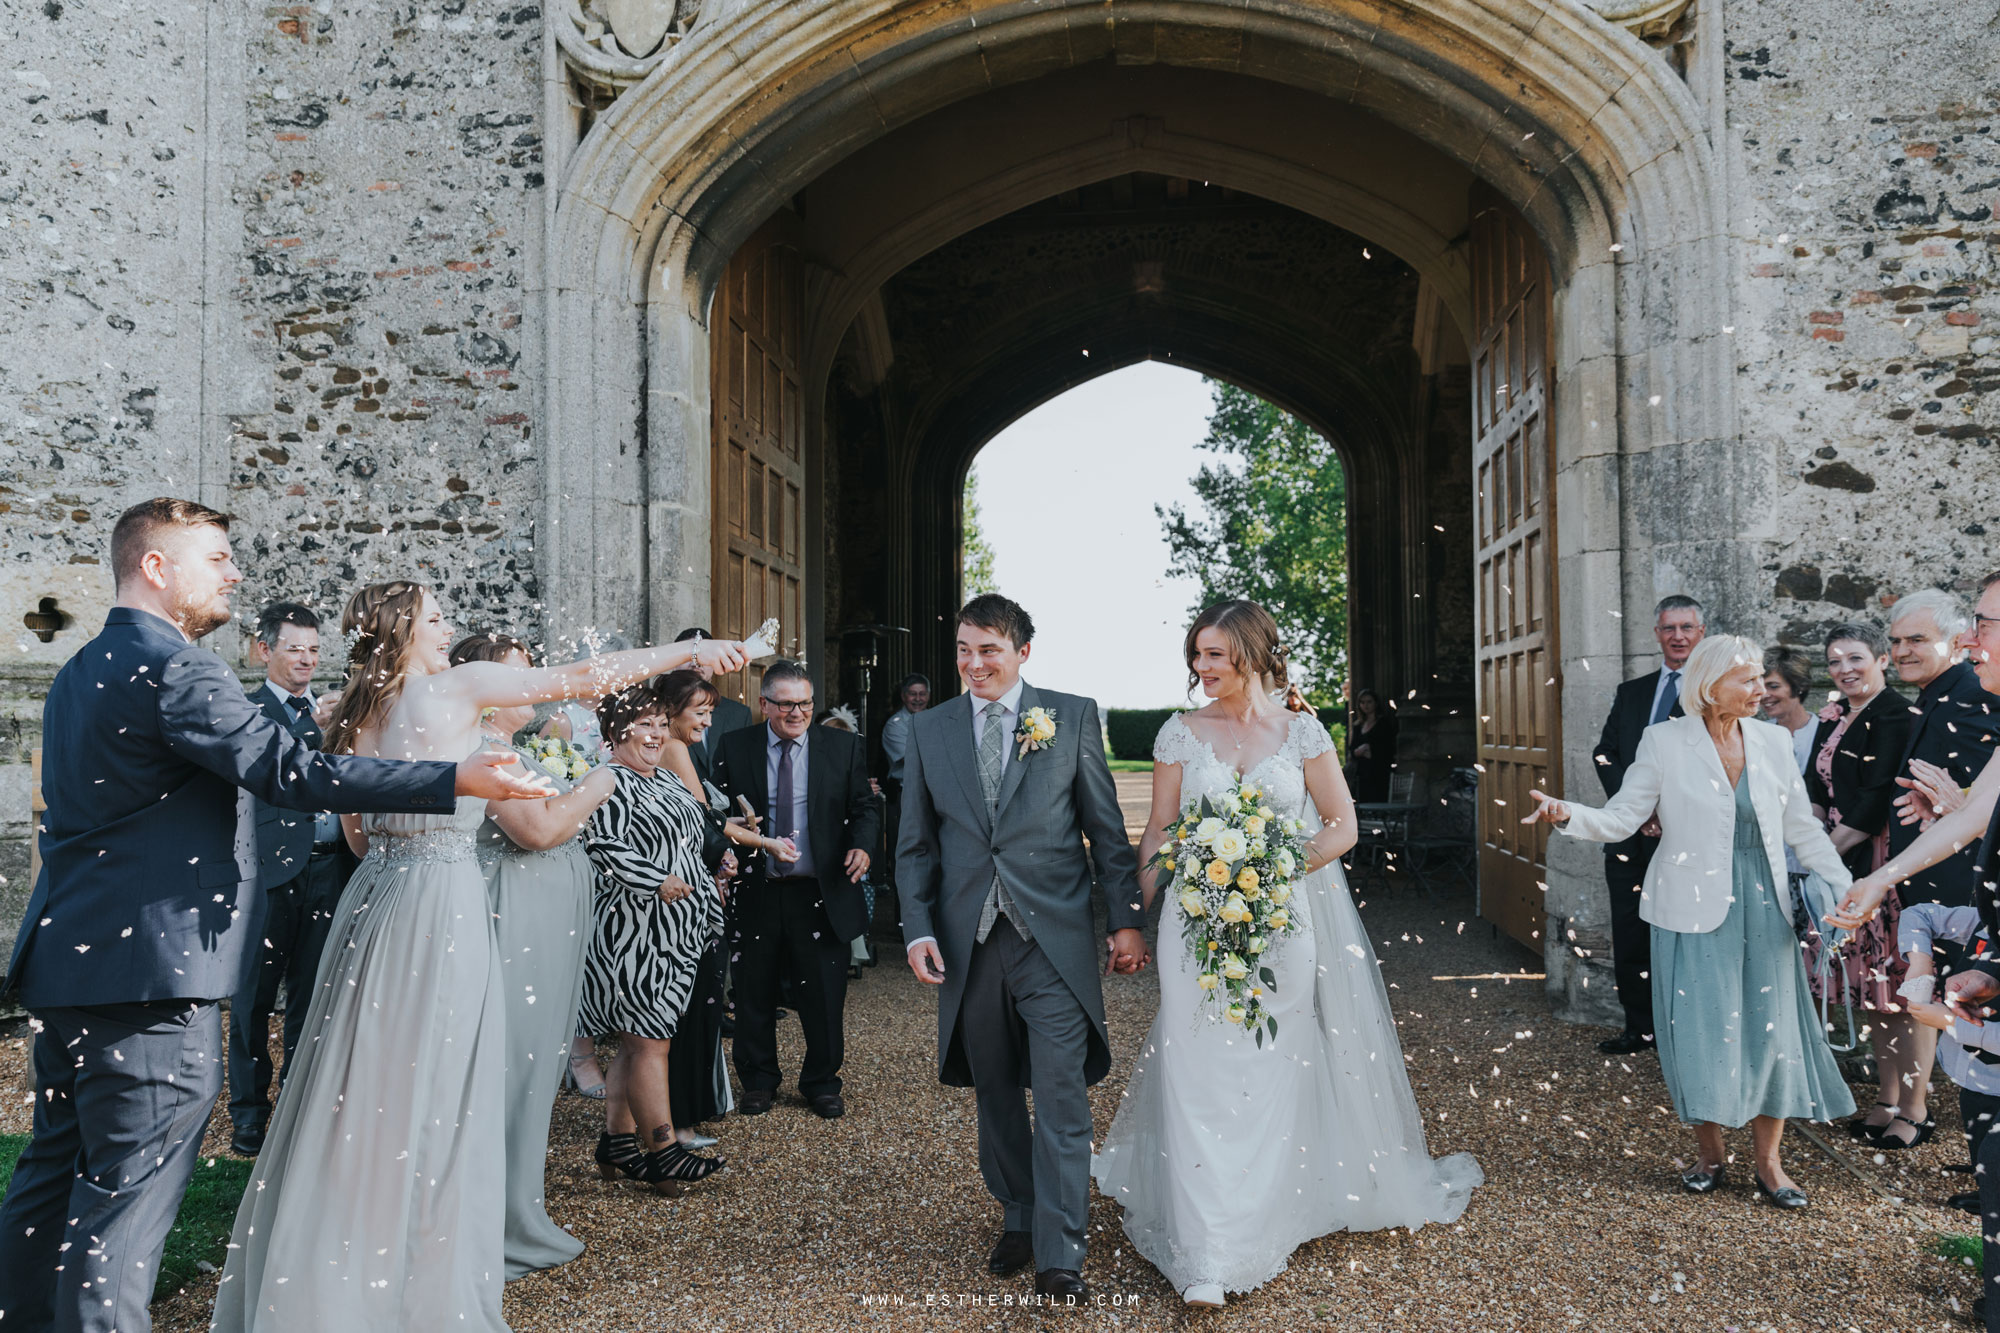 Pentney_Abbey_Wedding_Kings_Lynn_Norfolk_Esther_Wild_Wedding_Photography_IMG_0831.jpg